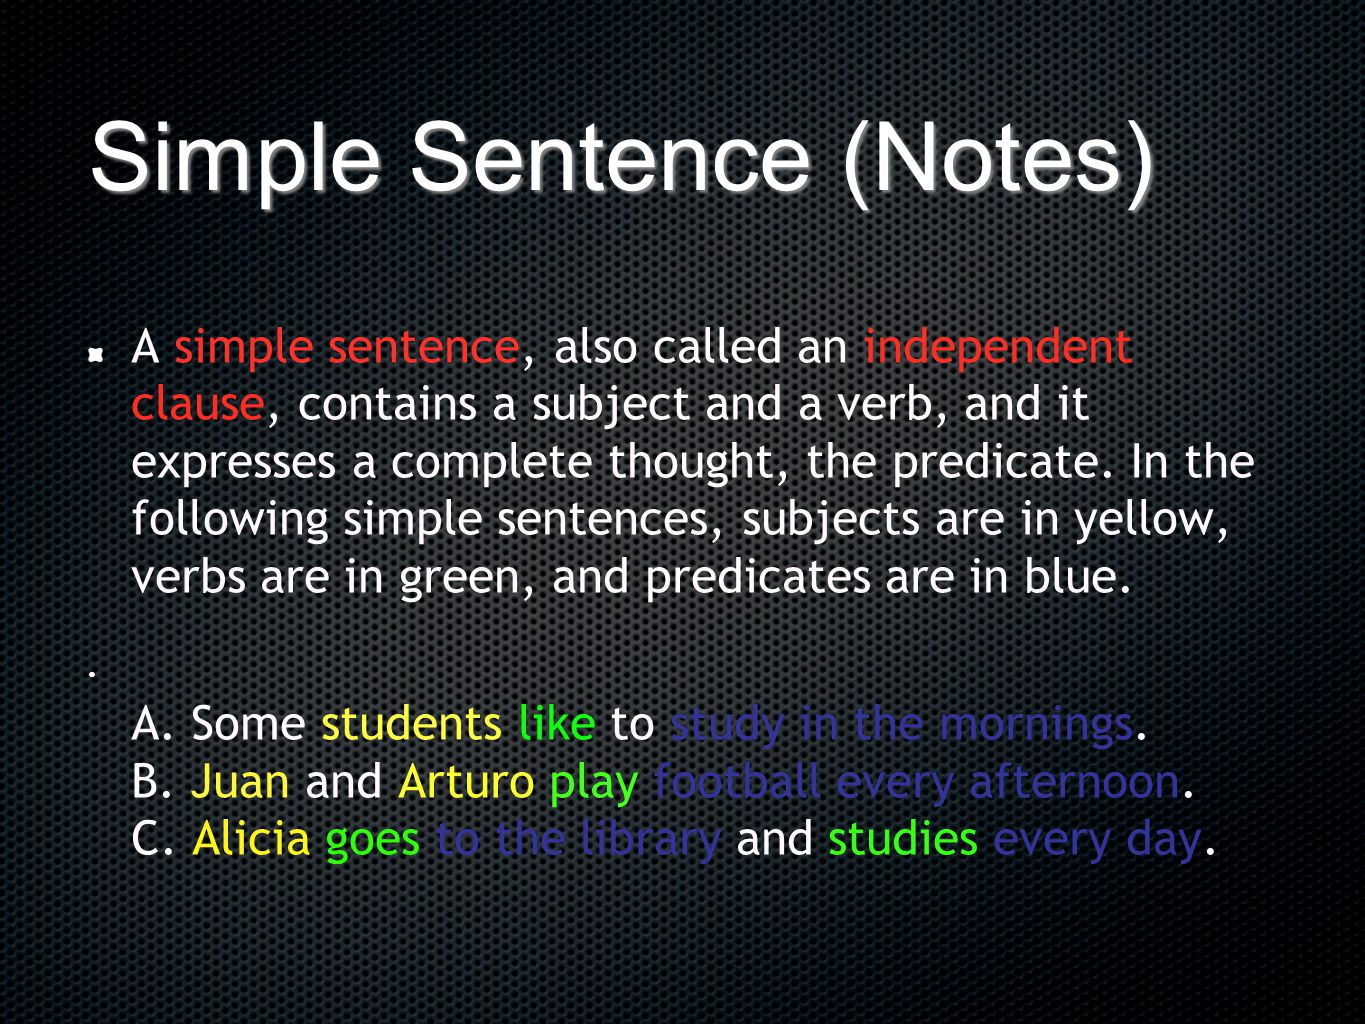 Simple Sentence (Notes)